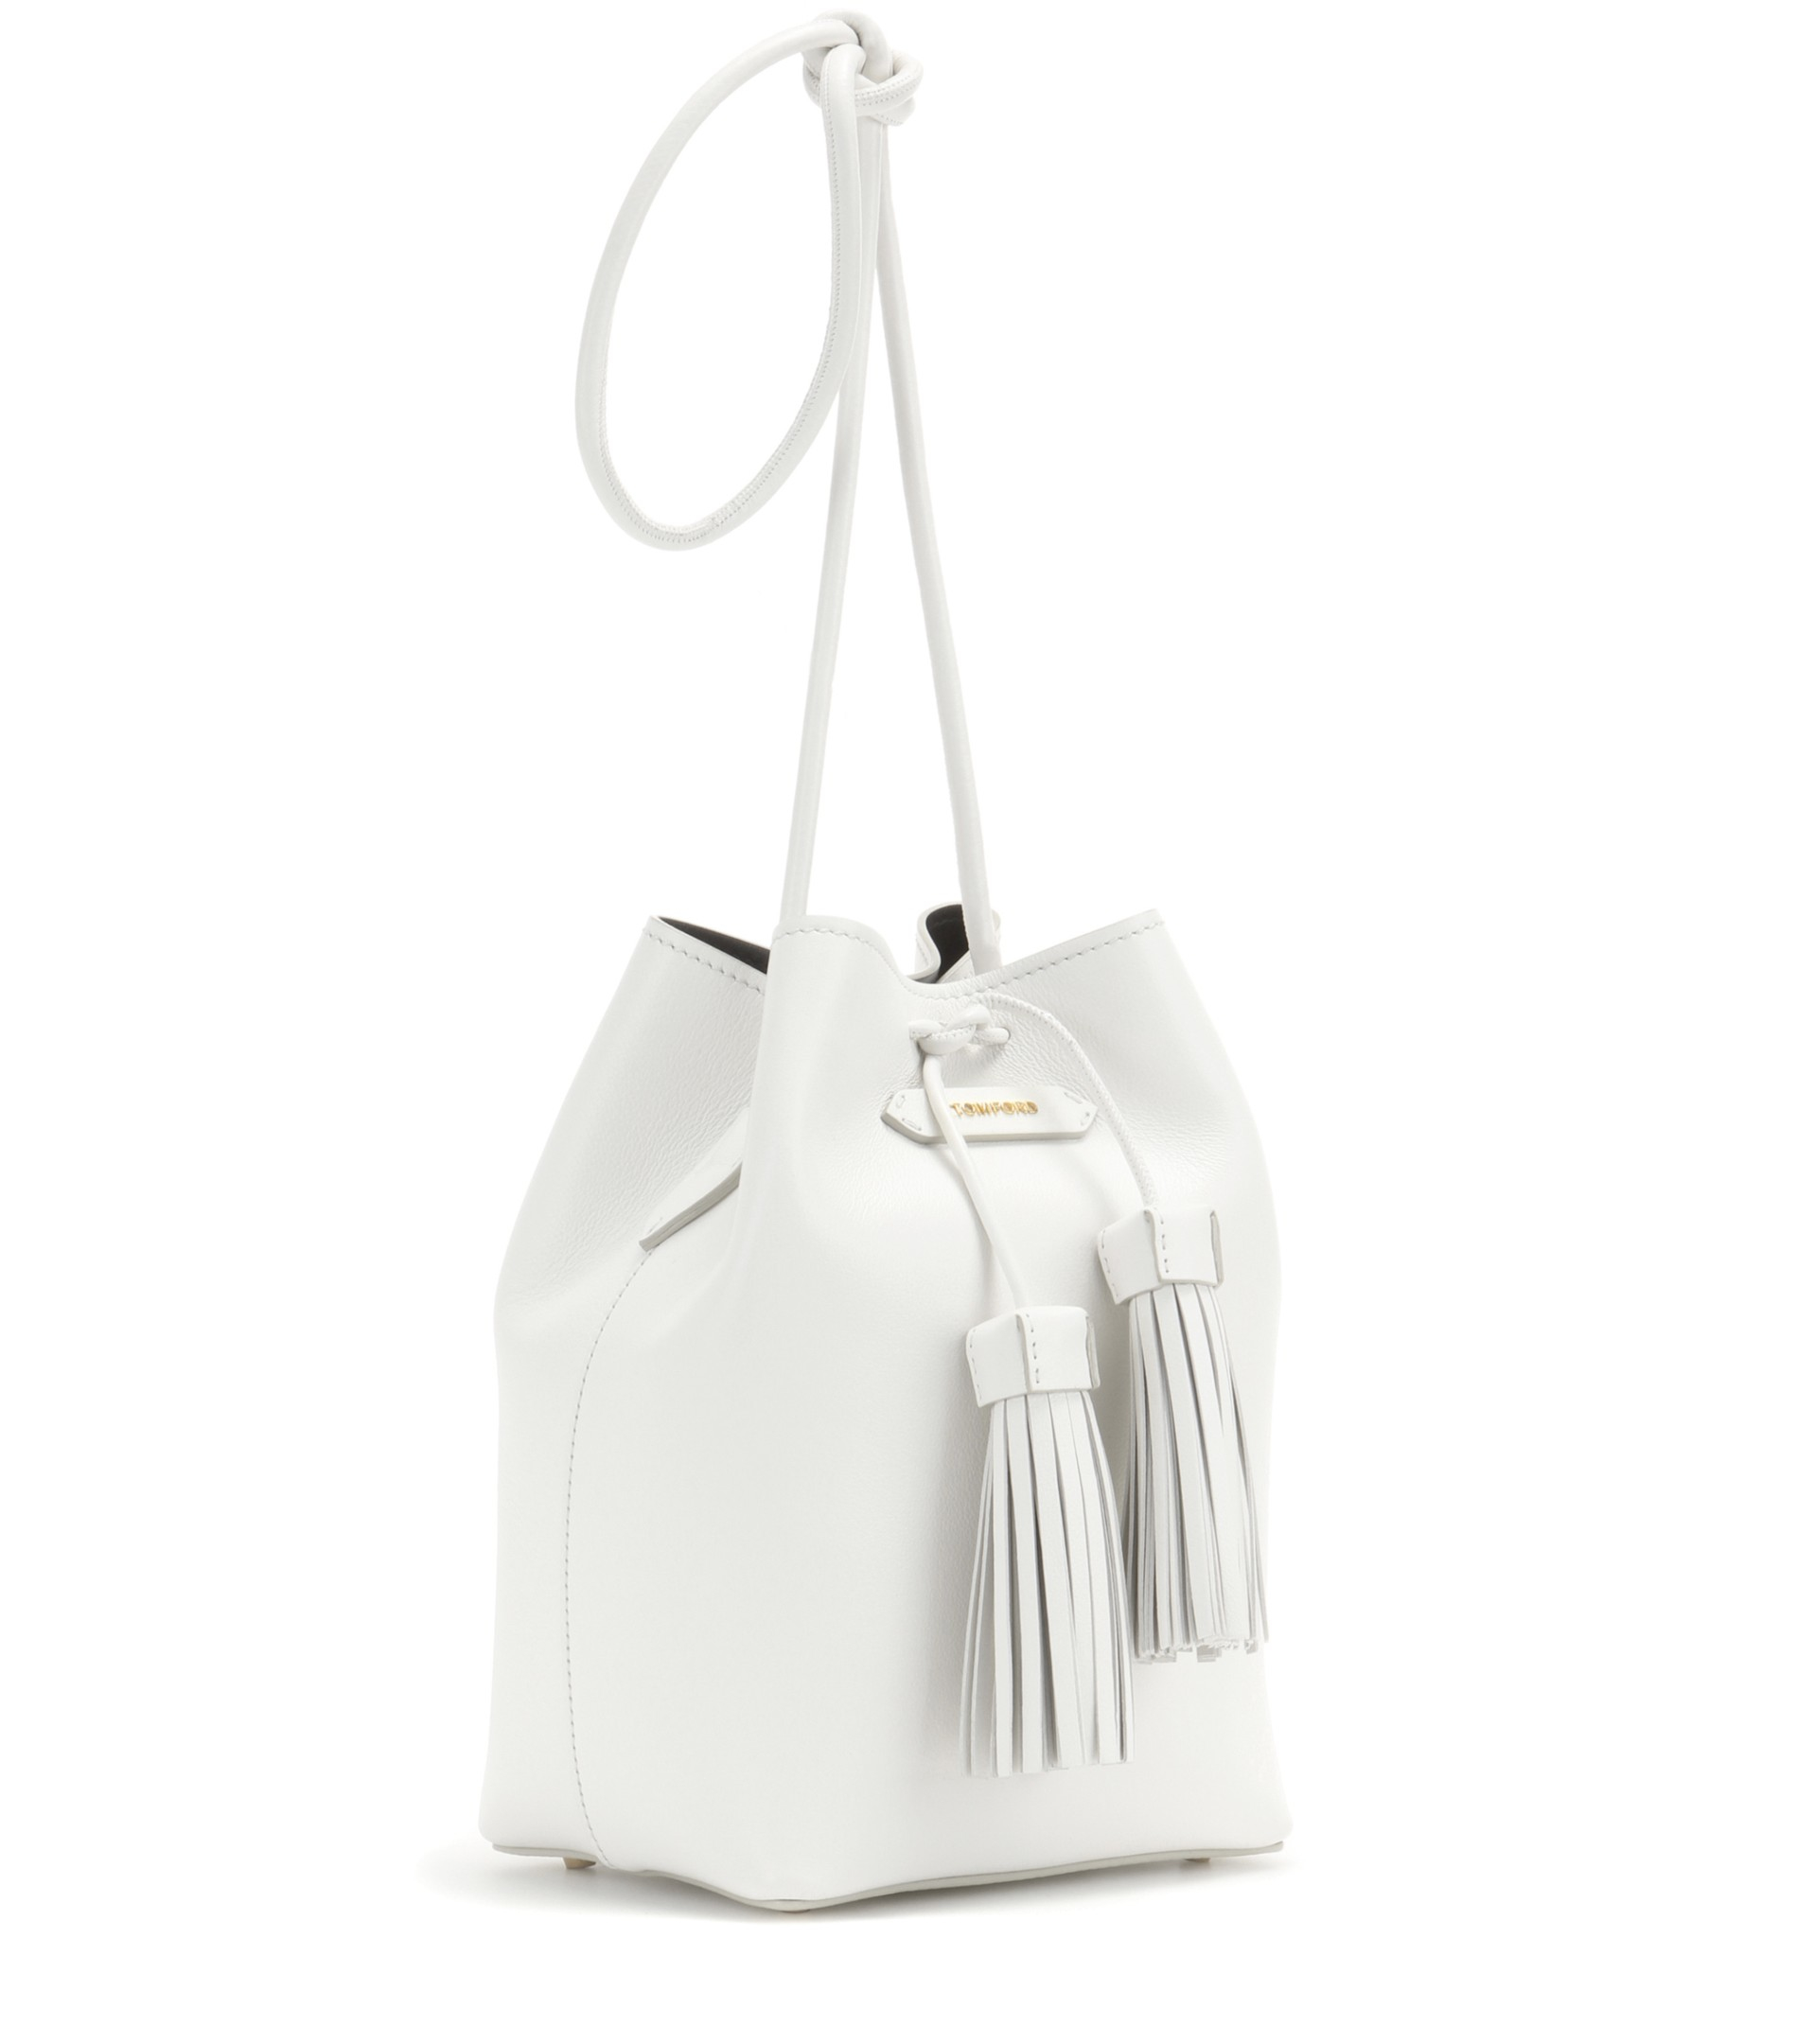 9ff8e5649192 Tom Ford Bucket Small Leather Bucket Bag in White - Lyst